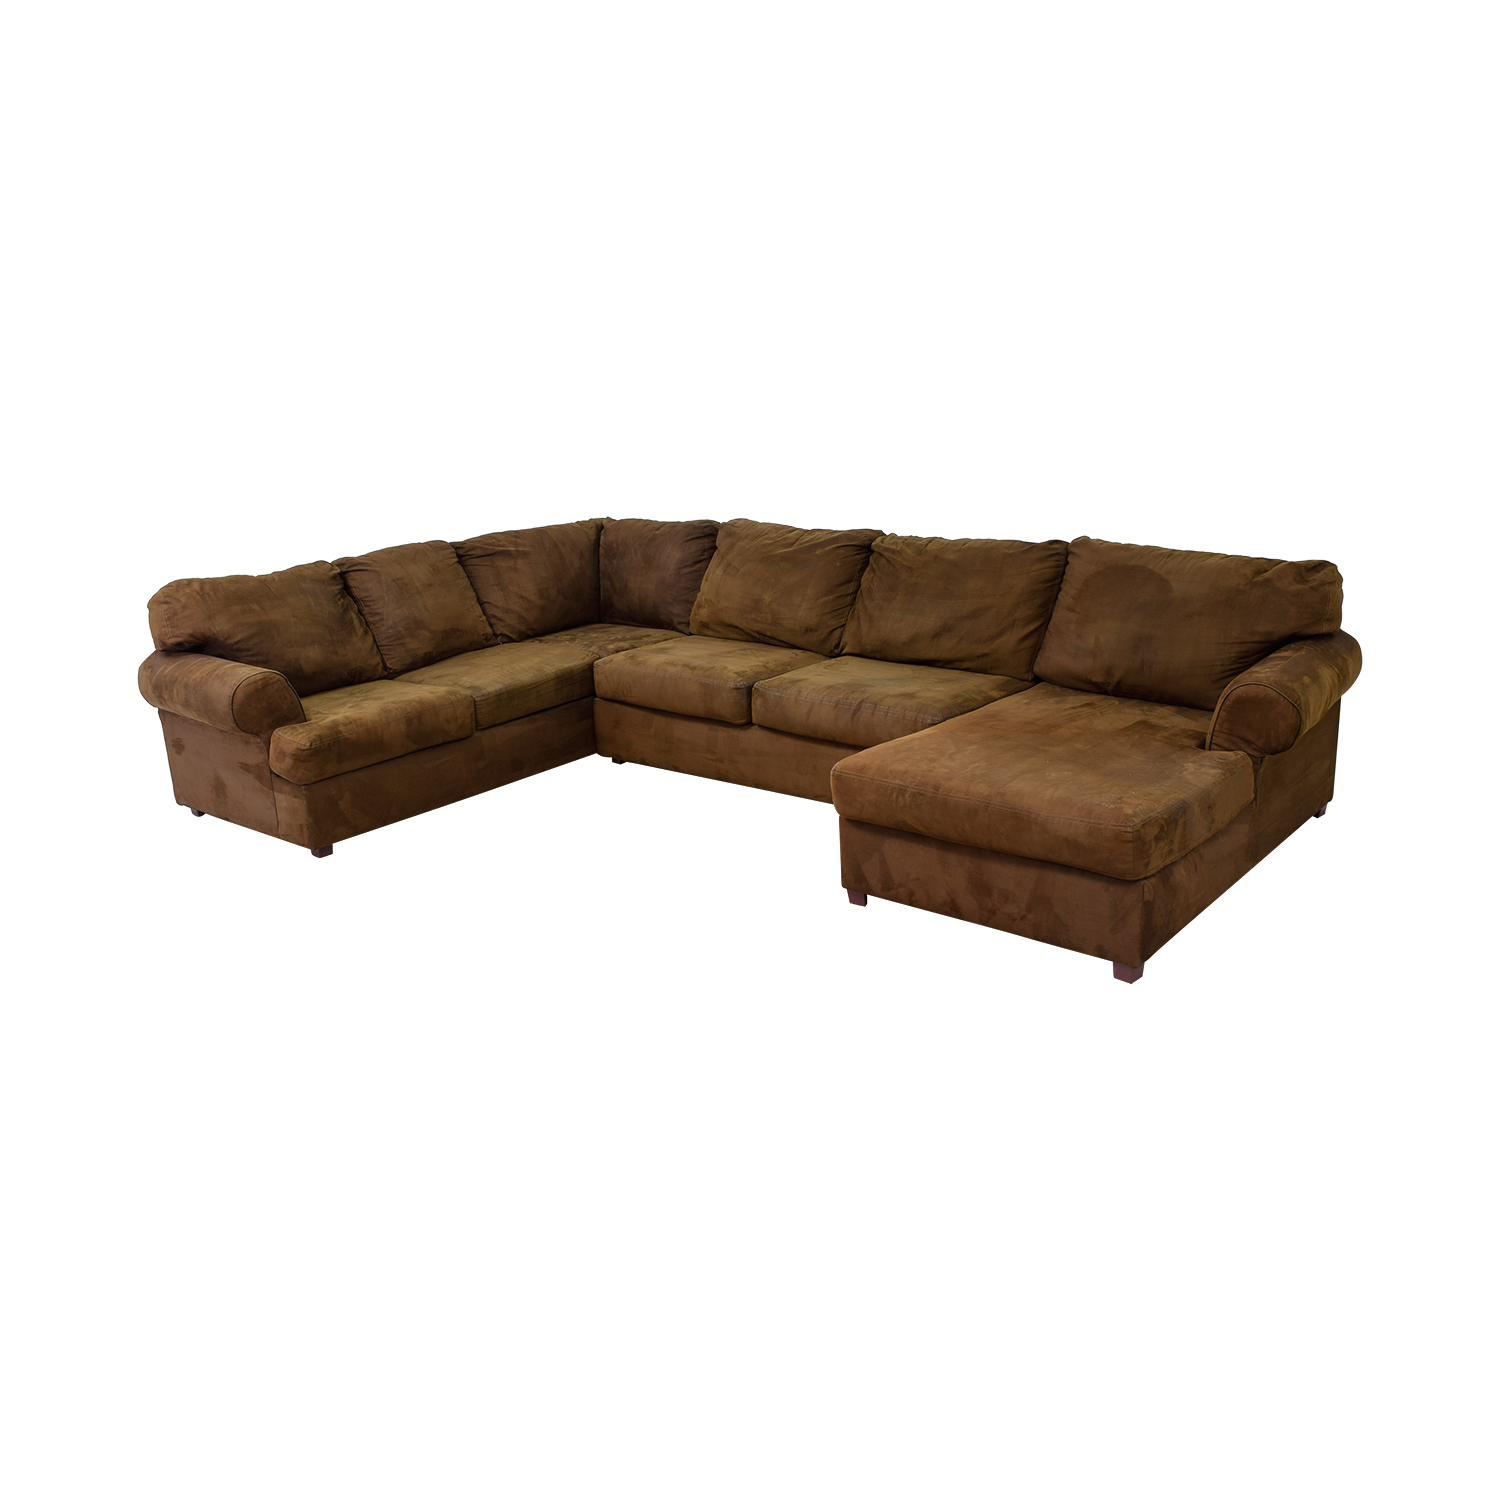 Jennifer Furniture Chocolate Brown L-Shaped Chaise Sectional Jennifer Furniture